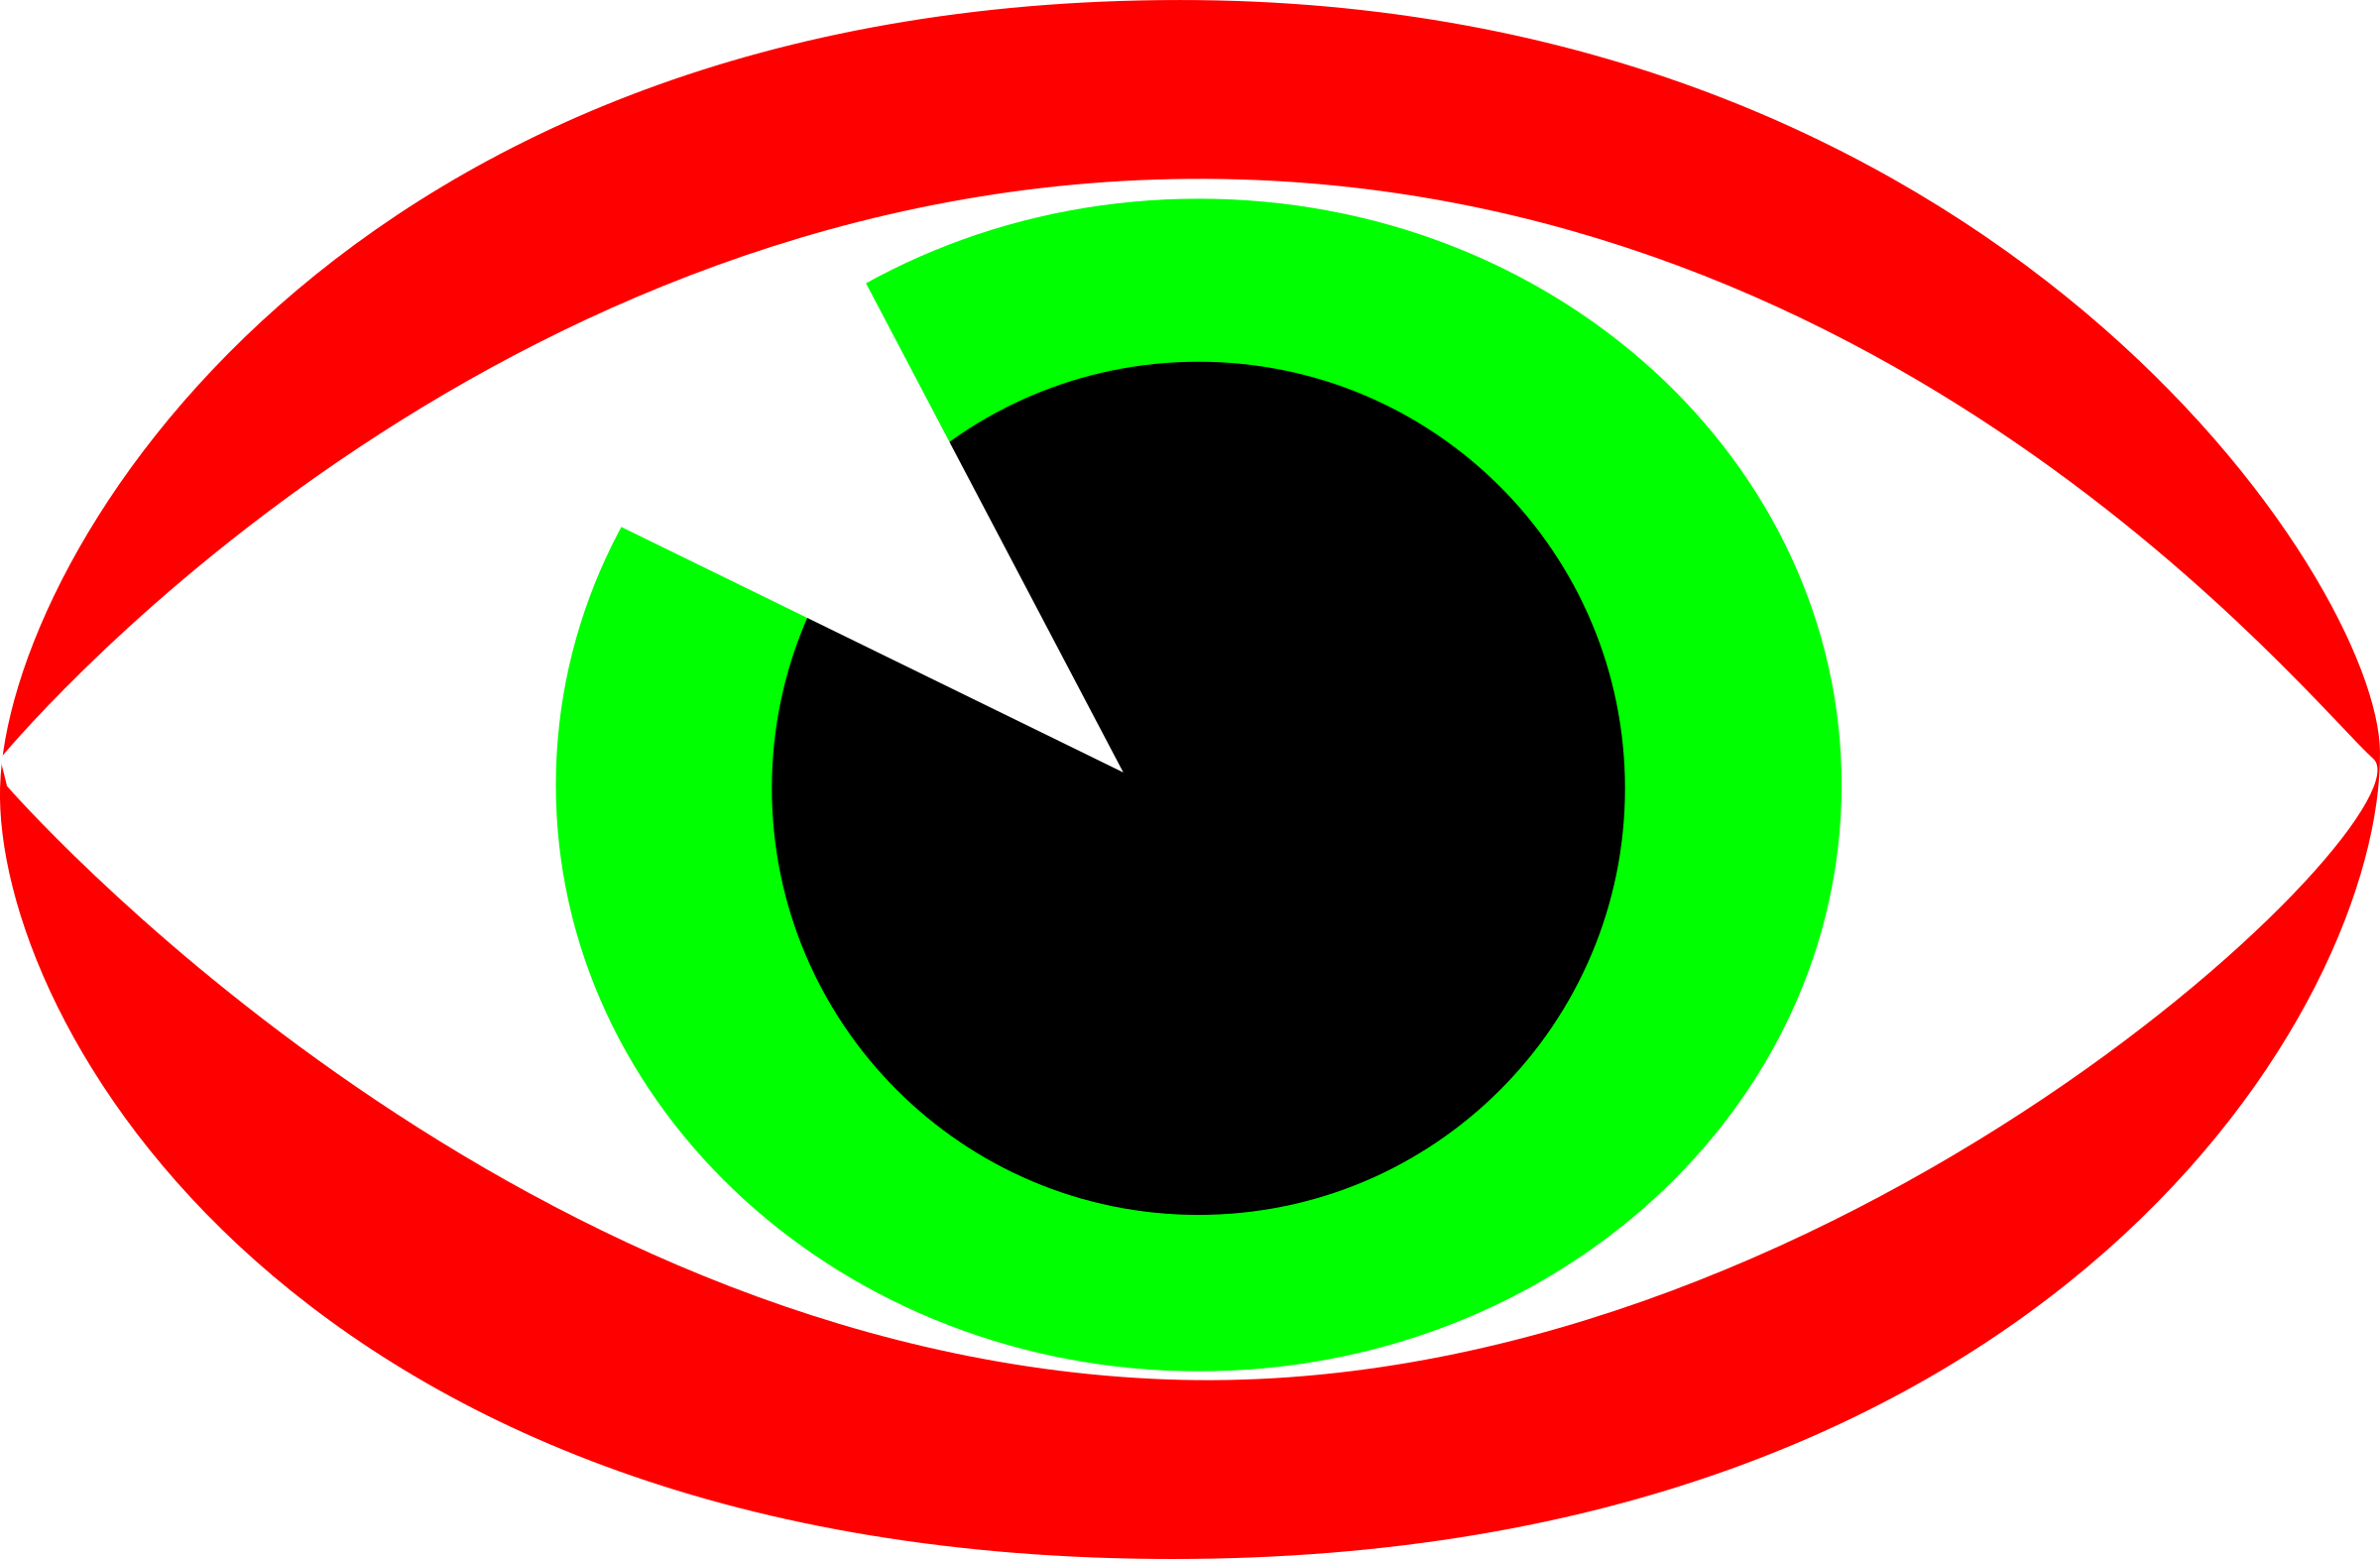 Eye sign by dbdeveloper